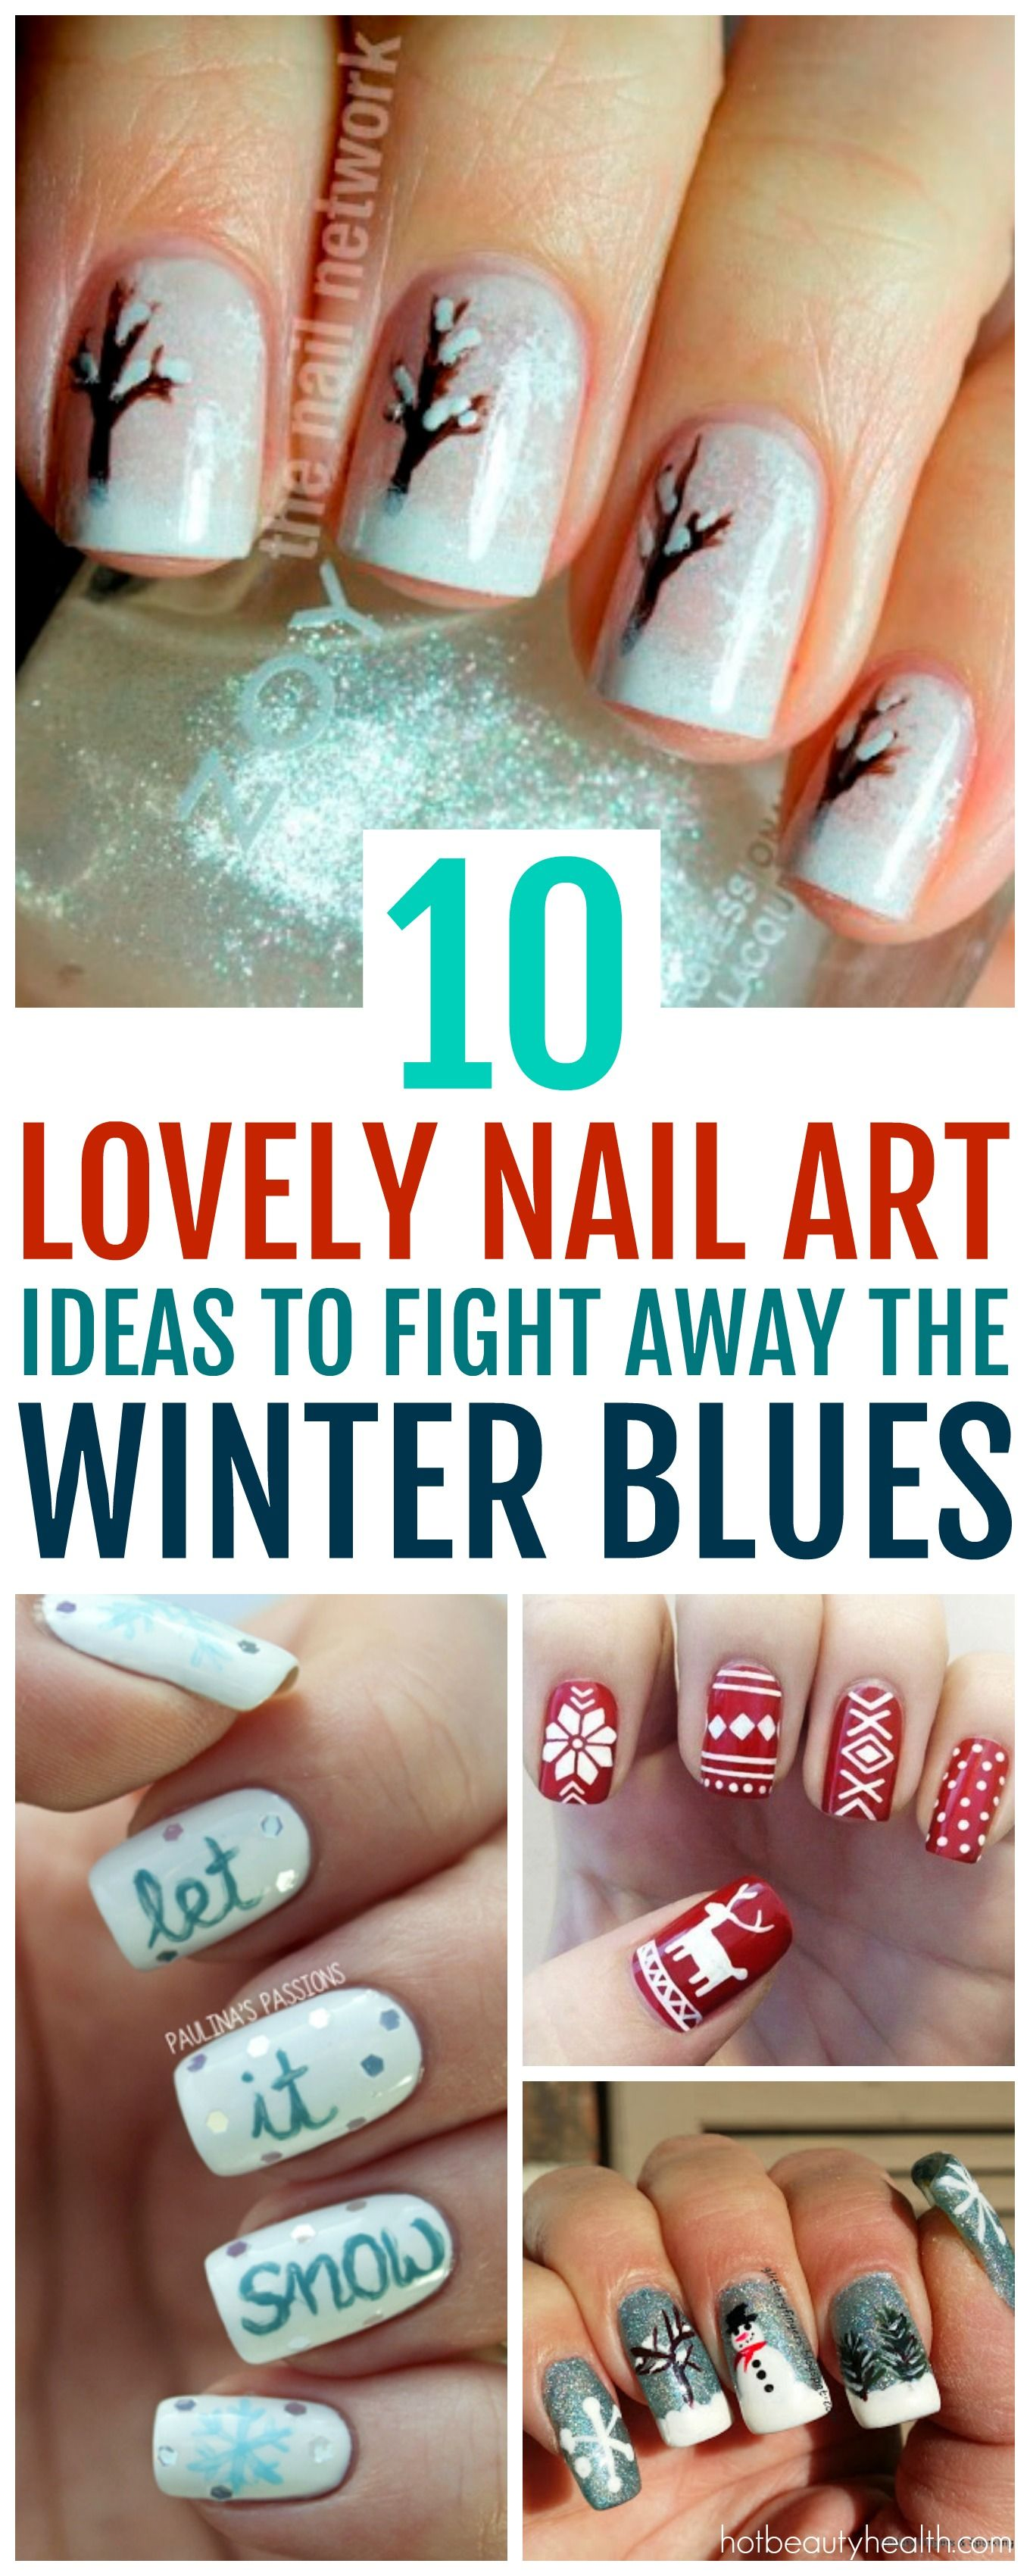 10 Lovely Nail Art Ideas to Brighten Up the Winter Season. | Winter ...